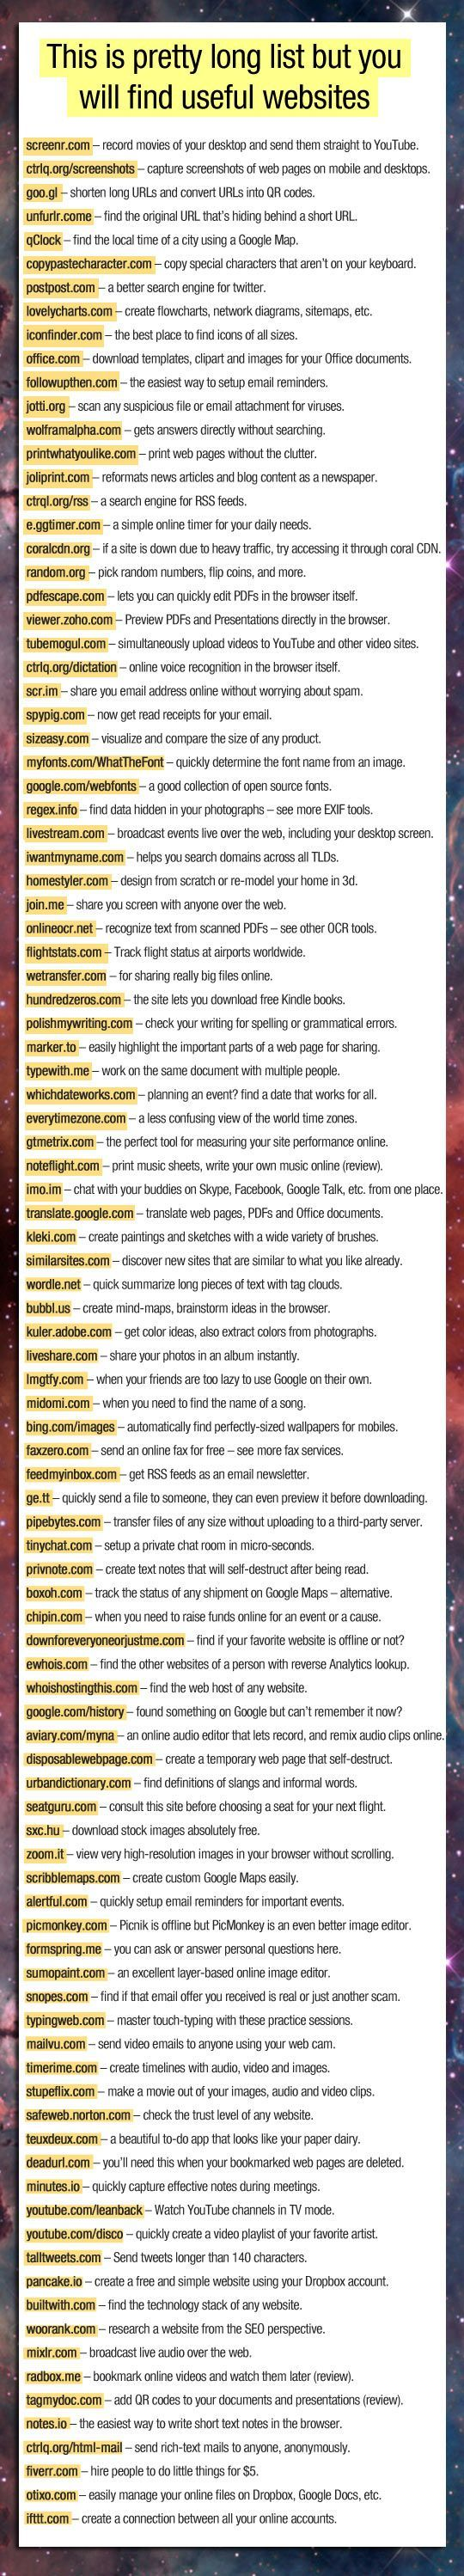 This Is A Pretty Long List But You Will Find Useful Websites